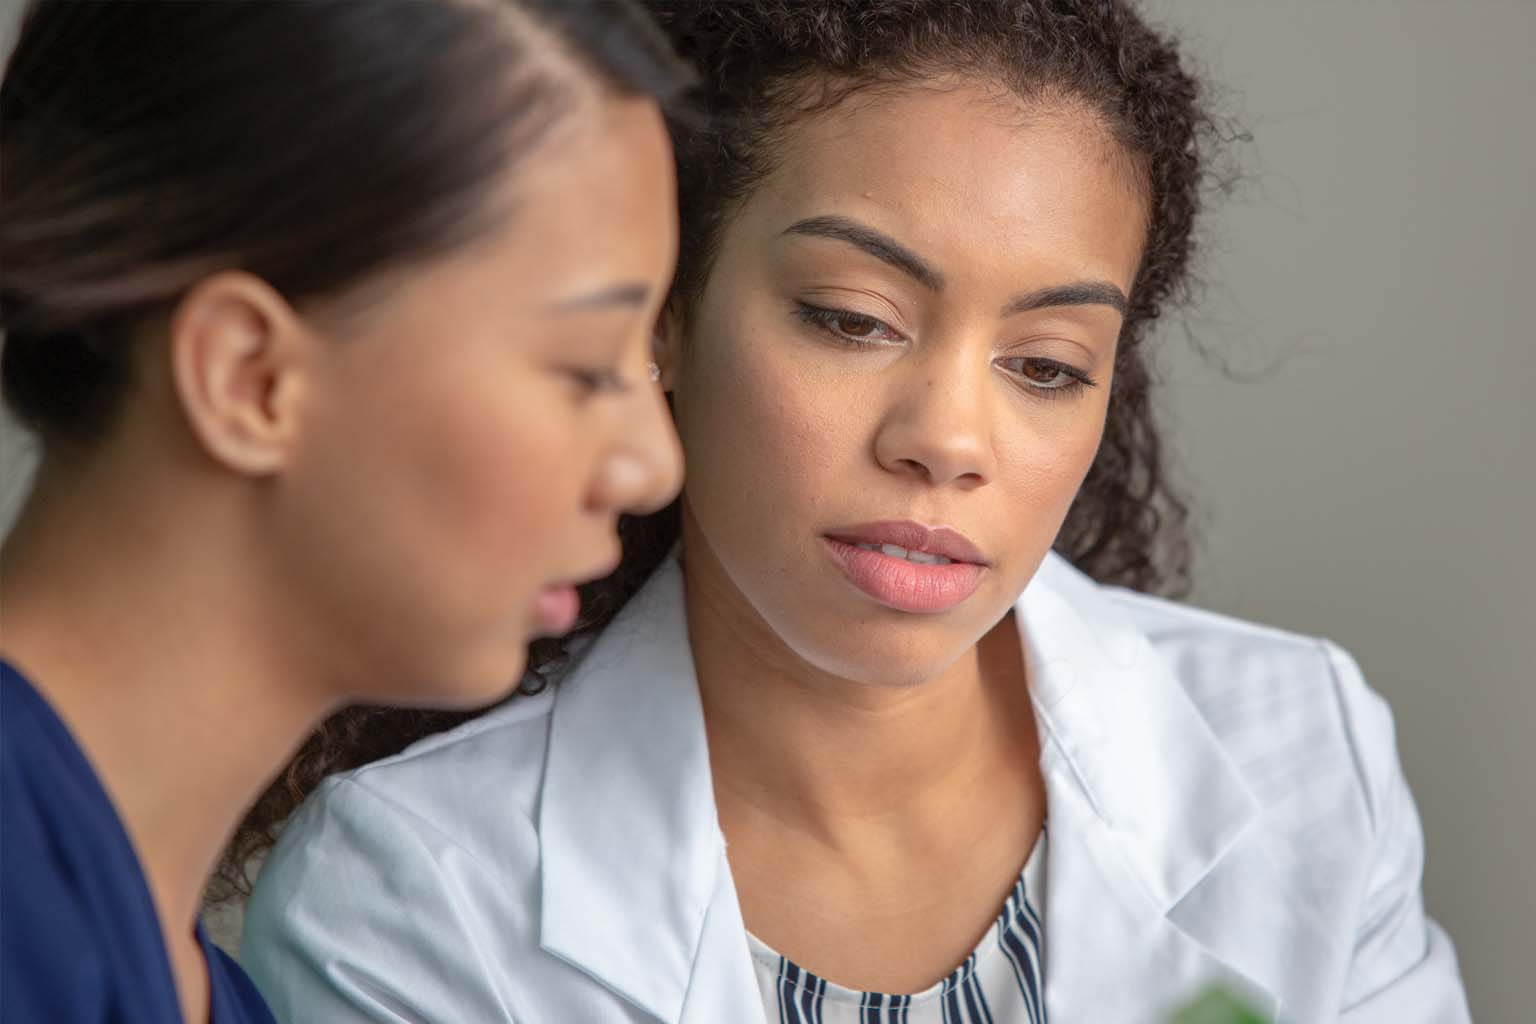 closeup of nurse and doctor talking, referring to data